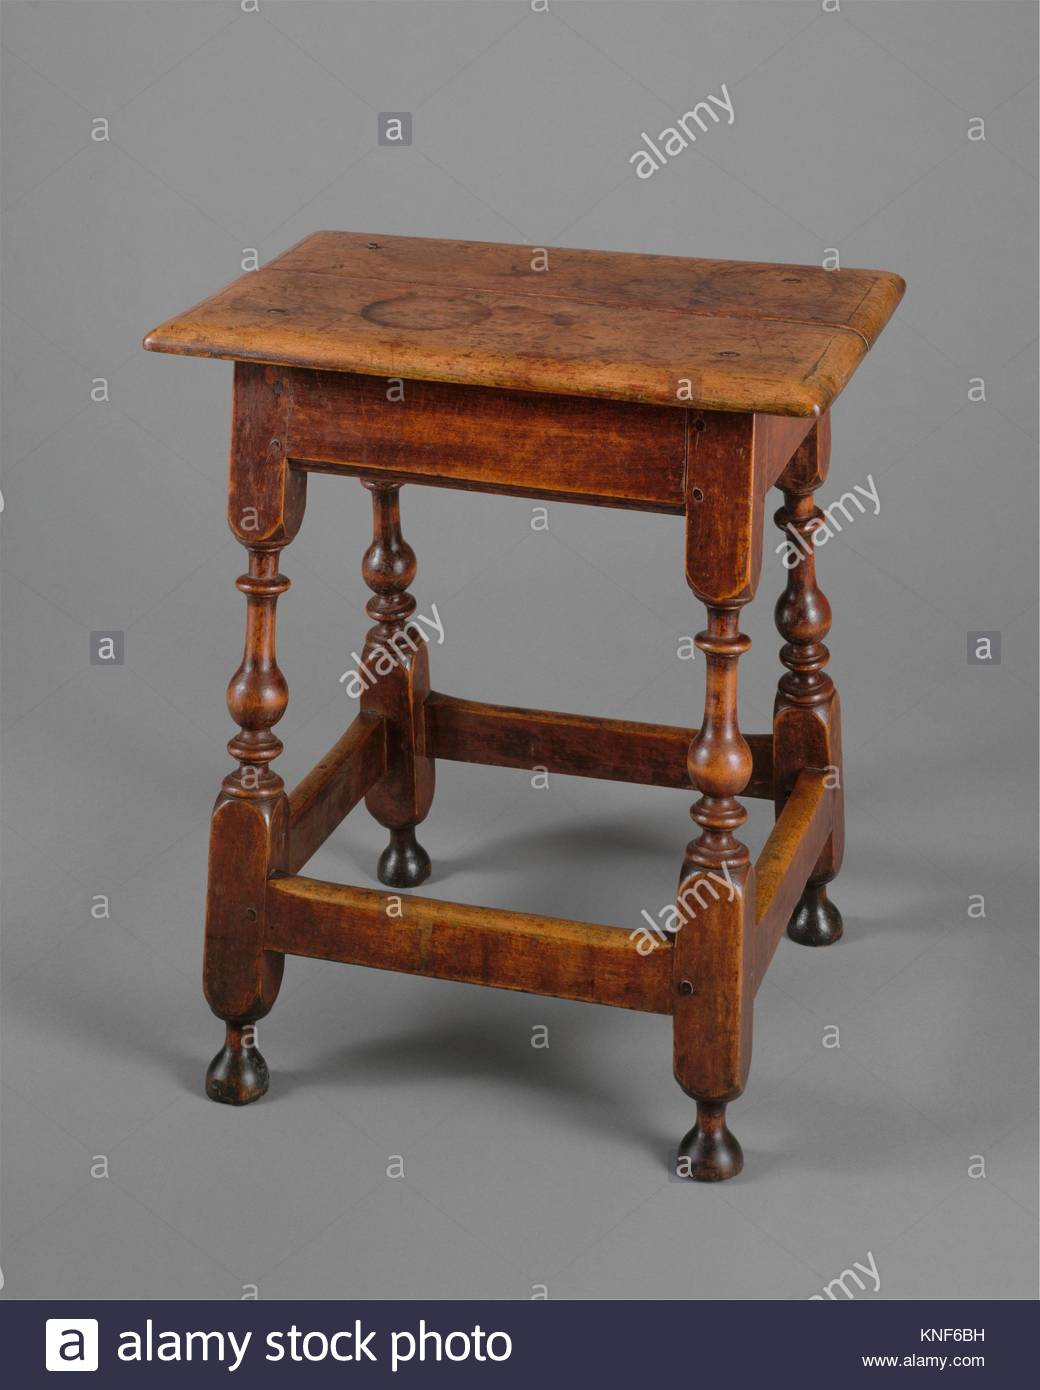 Joint Stool Stock Photos & Joint Stool Stock Images.